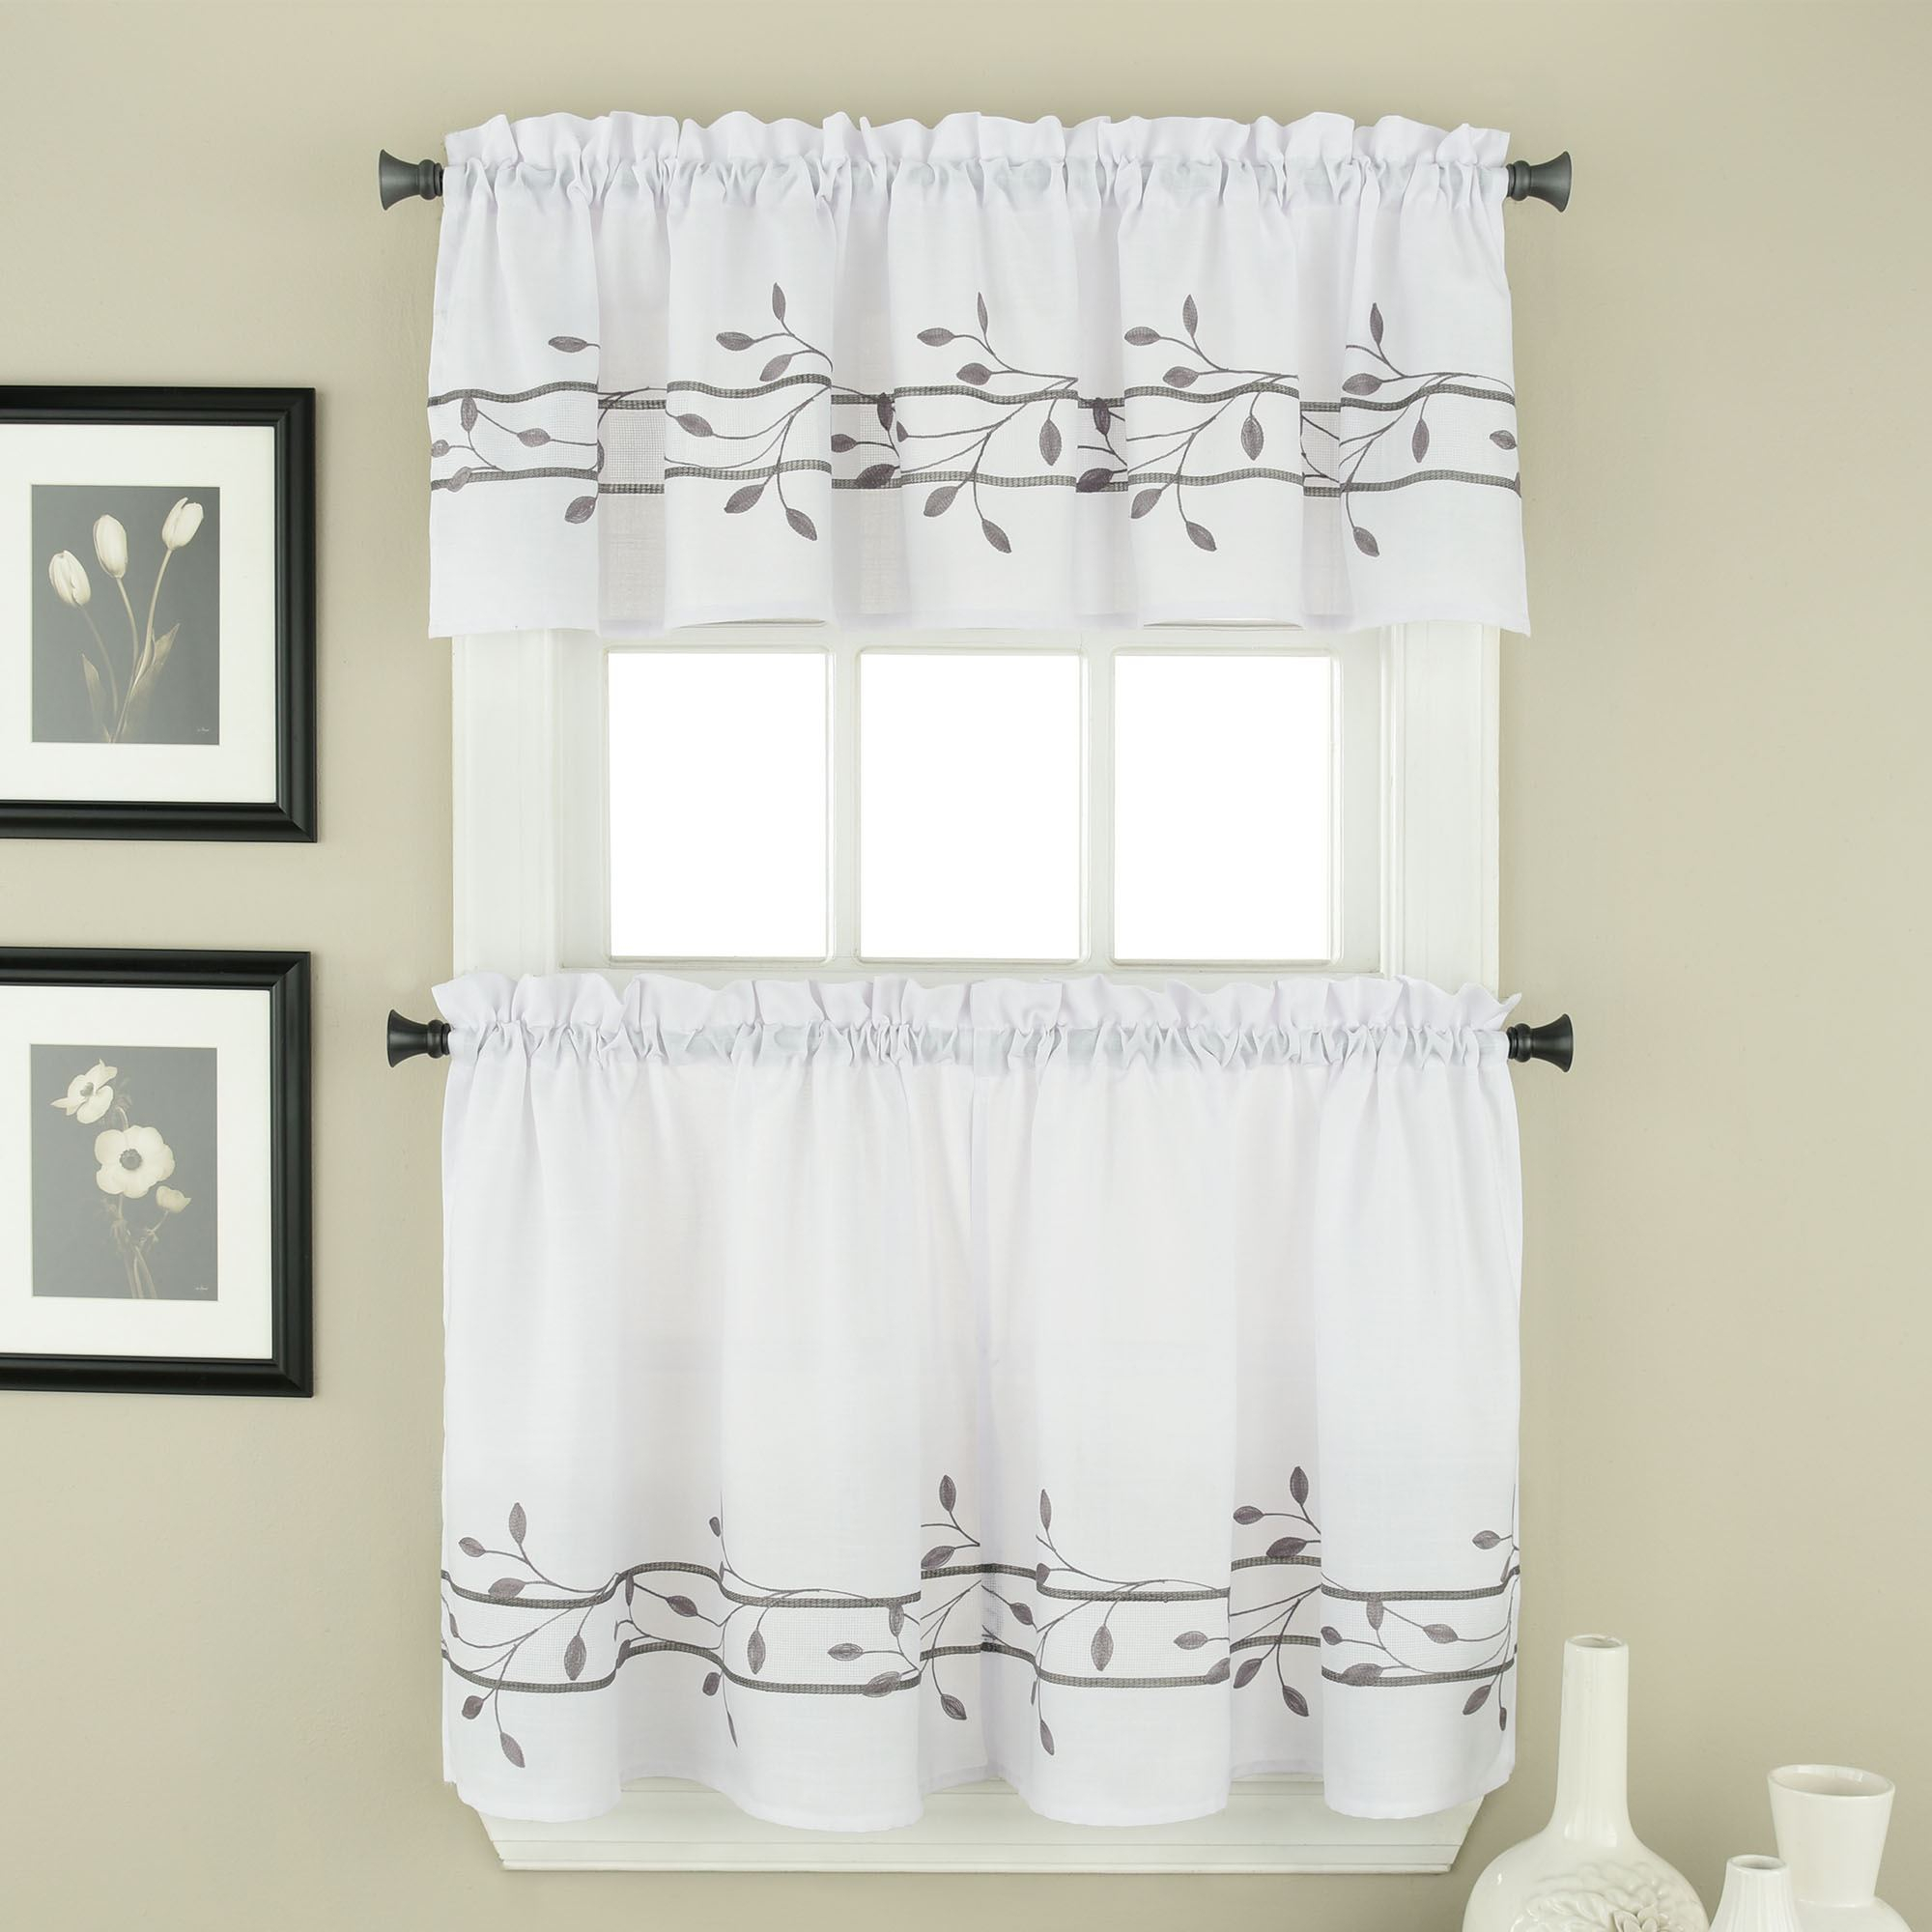 Treillage Petal Embroidered Window Tier And Valance Set With Regard To Window Curtain Tier And Valance Sets (View 17 of 20)